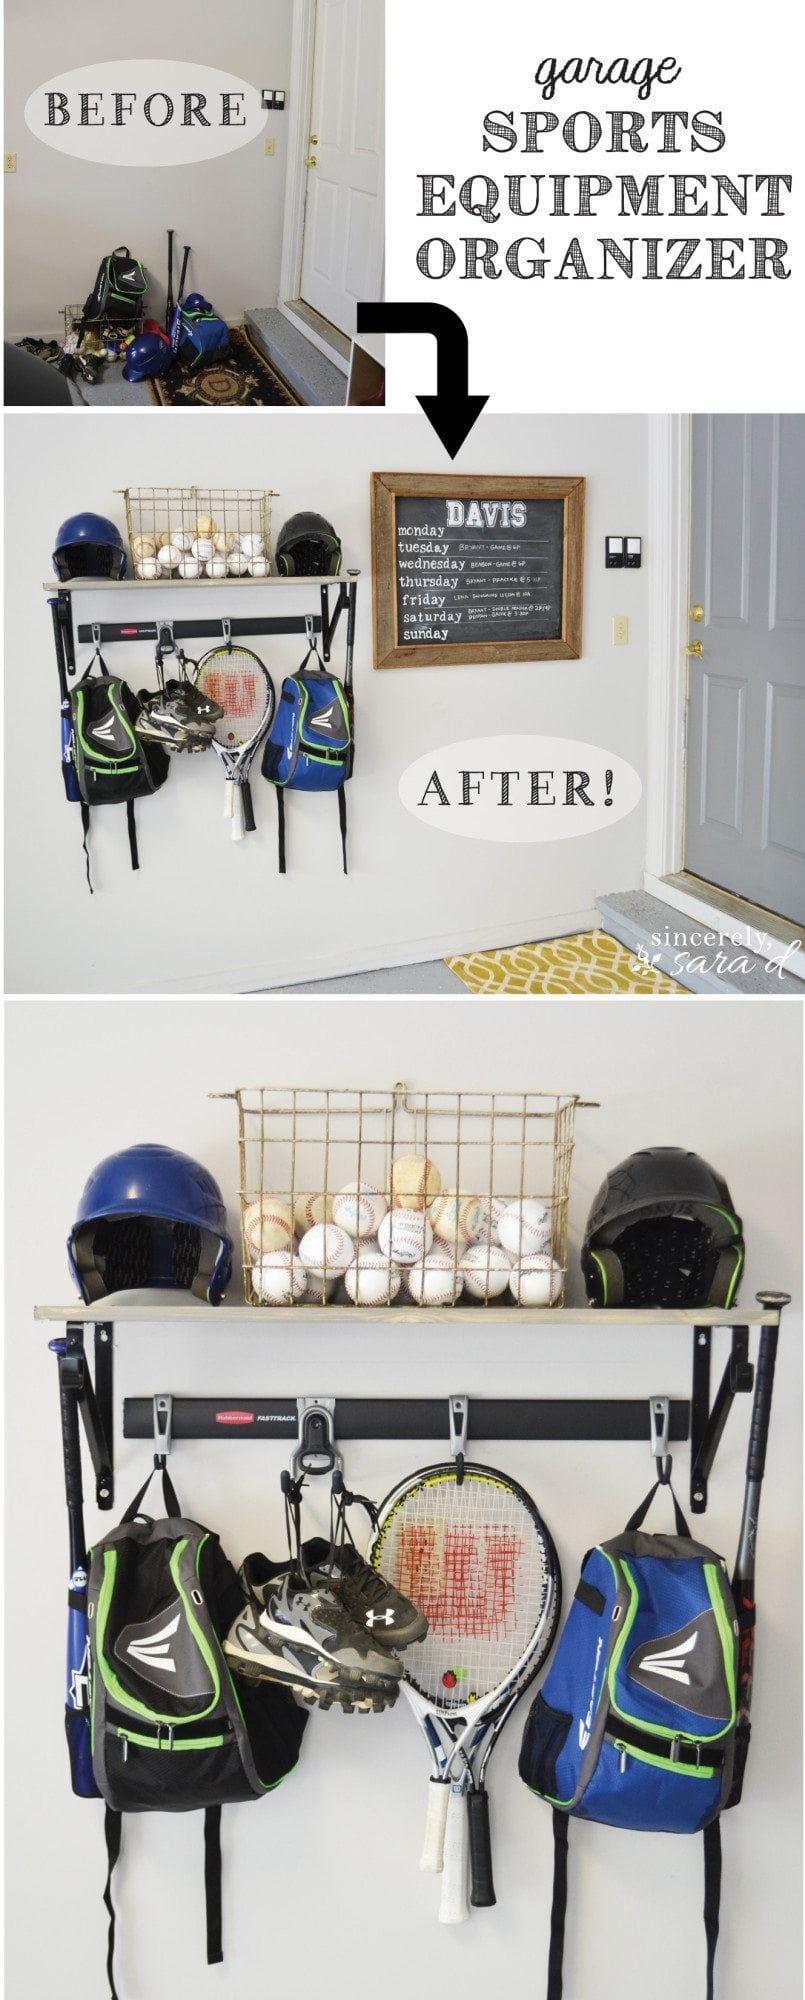 Garage Sports Equipment Organizer